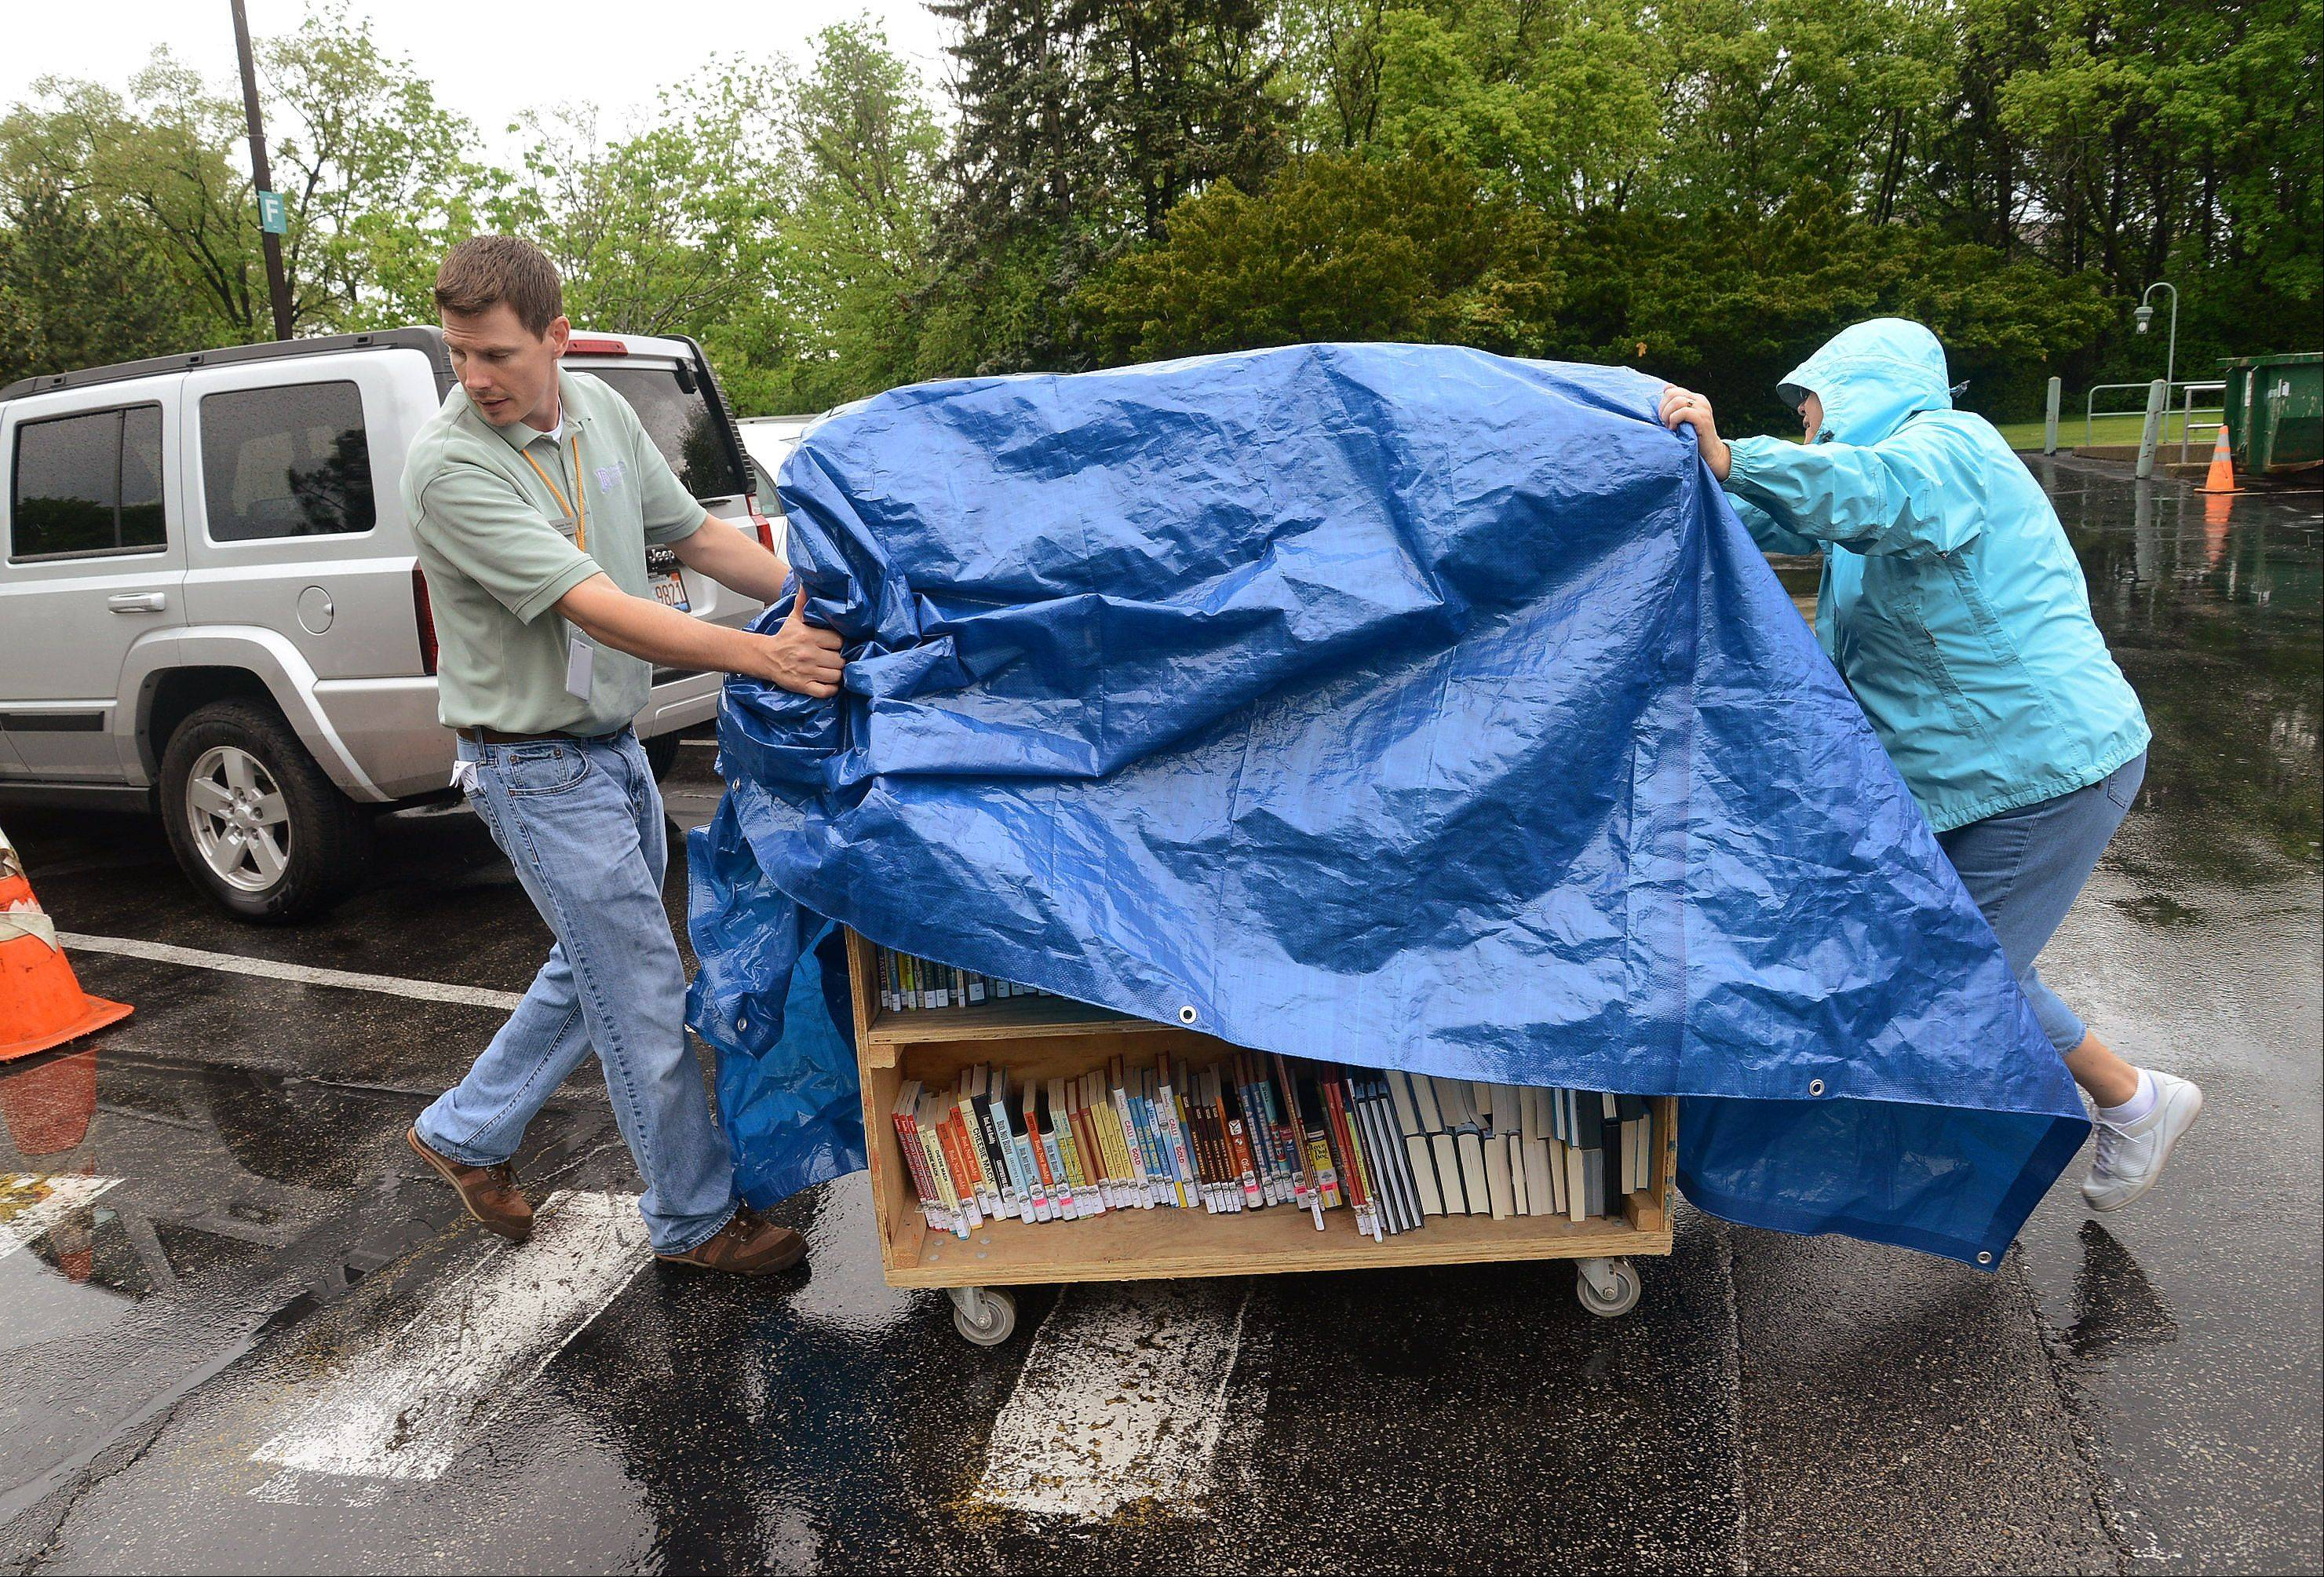 Head of Circulation Stephen Territo and Circulation Coordinator Vivien Starr move a cart full of books and DVDs from the library annex back to the newly renovated Vernon Area Library. Roughly 20,000 items needed to be moved after a $1.3 million renovation.